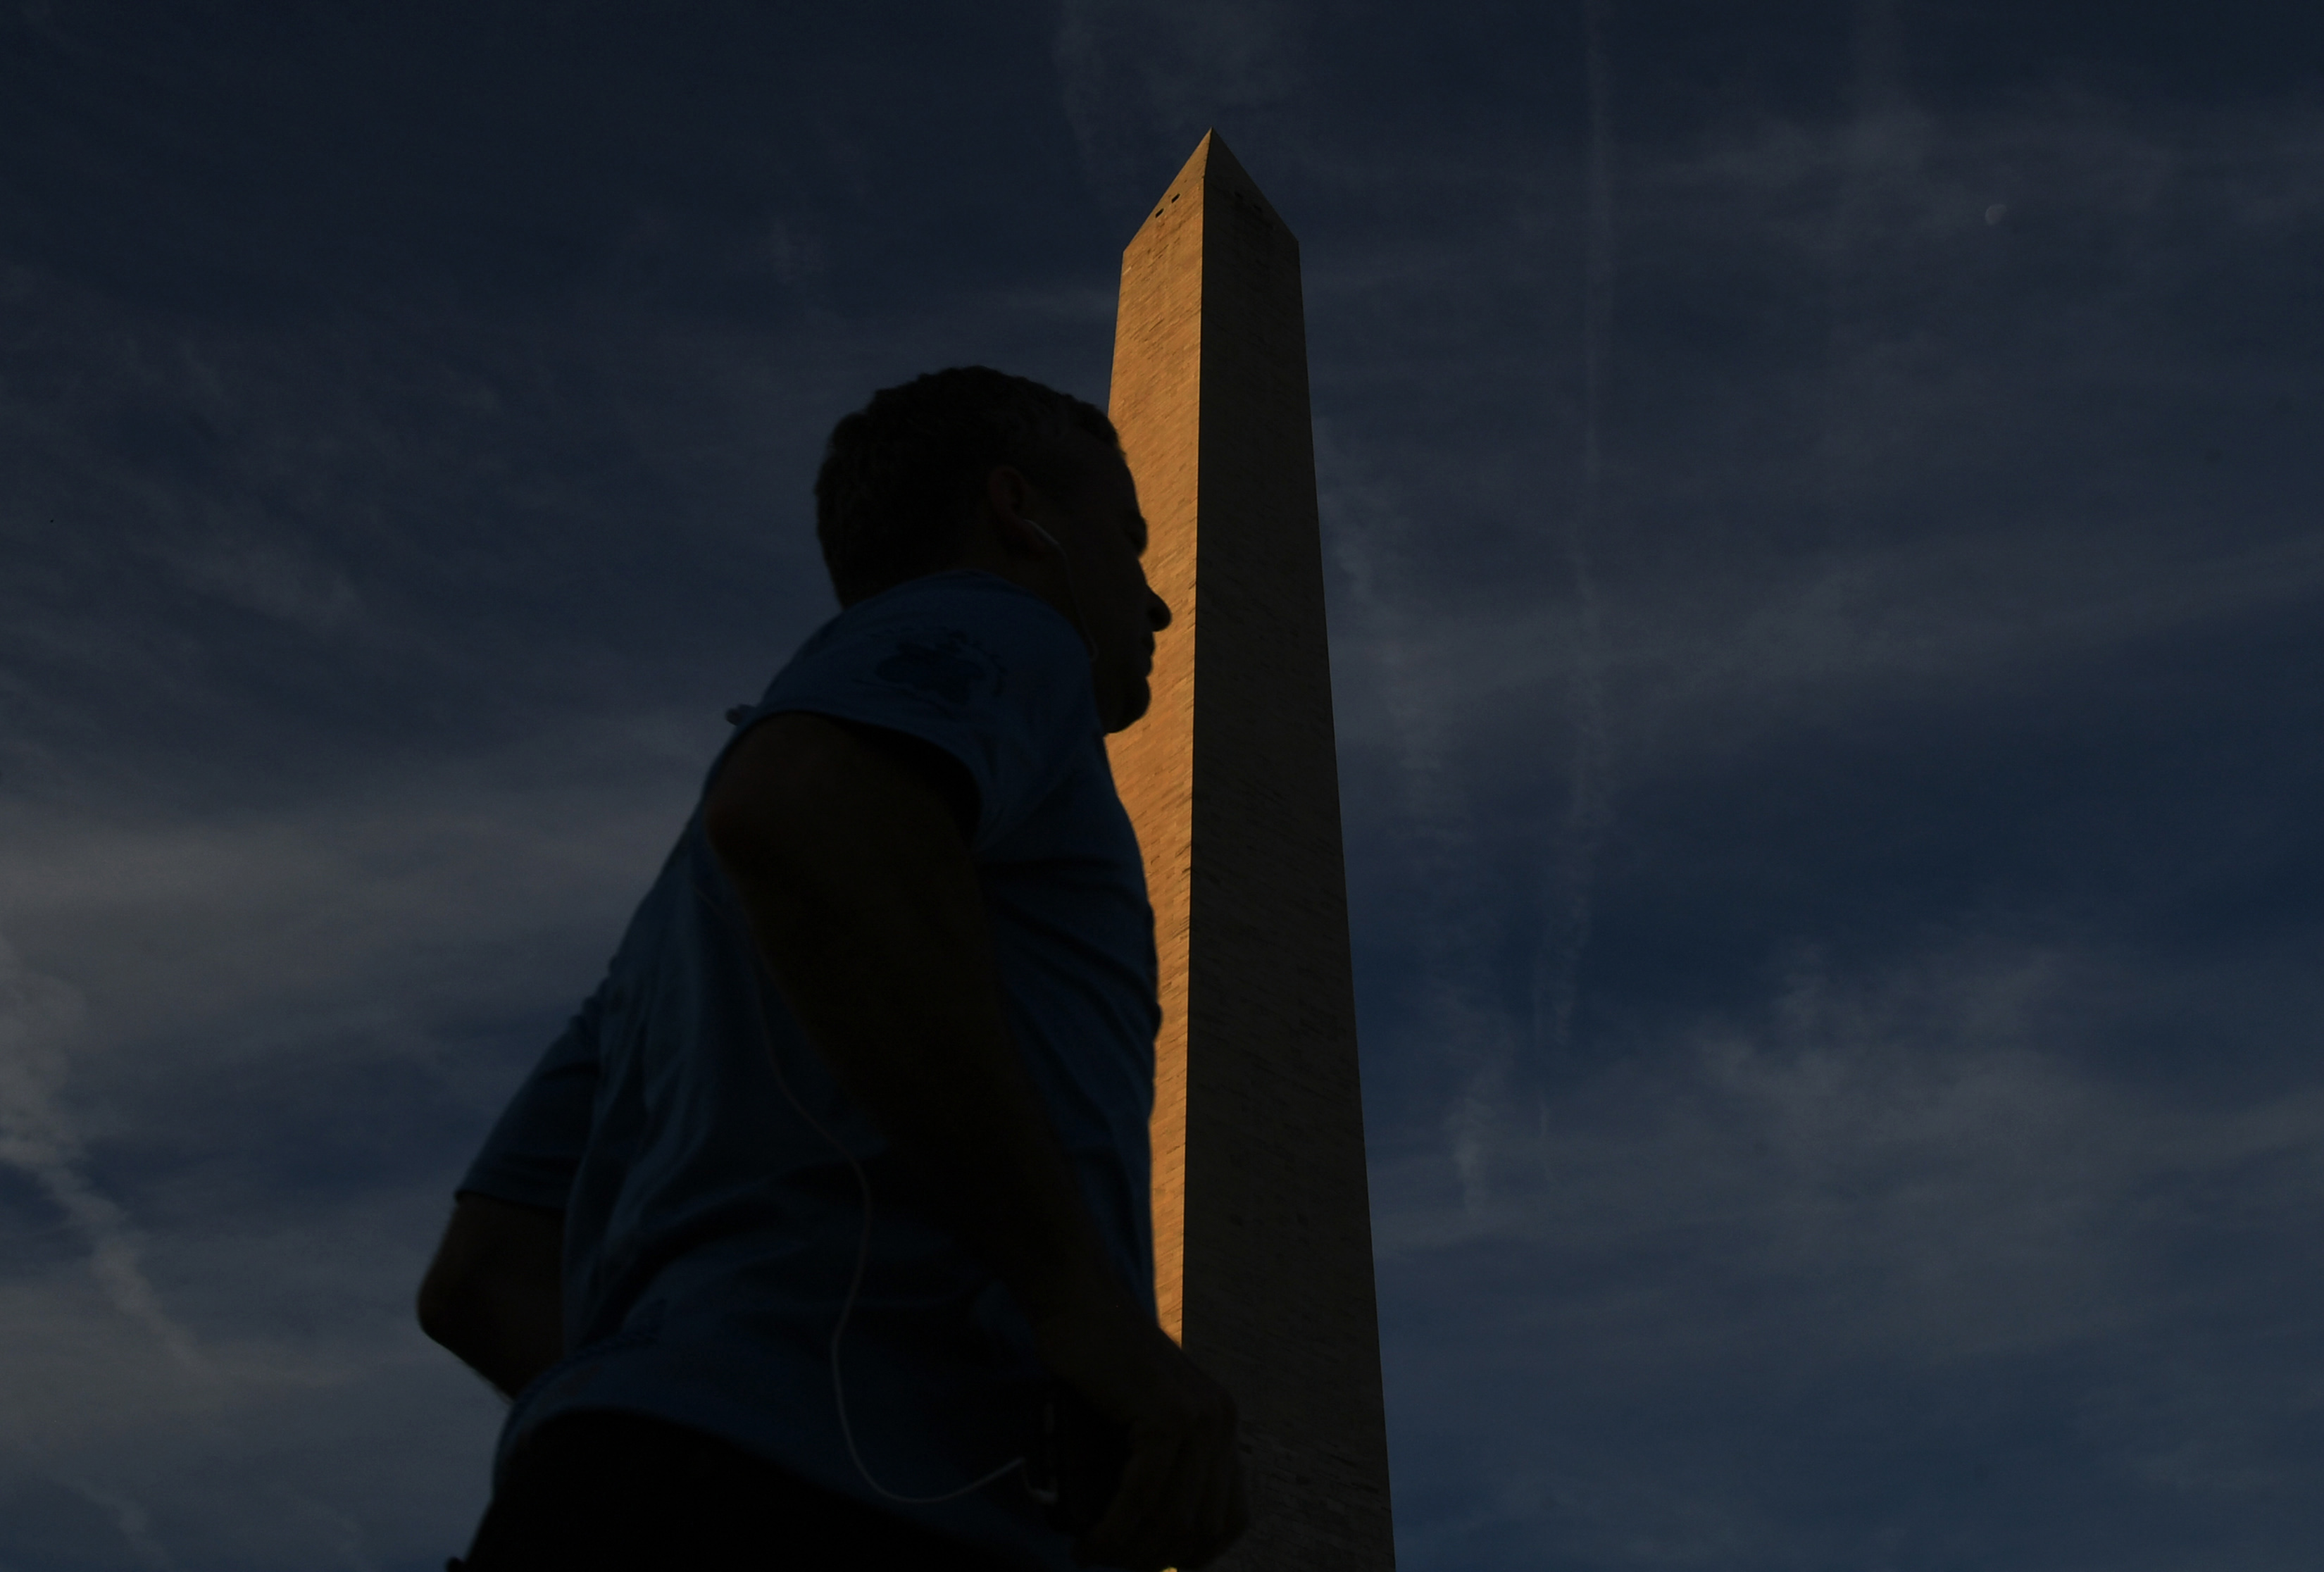 A pedestrian walks by the Washington Monument before the iconic structure's reopenining to the public on Thursday, Sept. 19, 2019, in Washington. MUST CREDIT: Washington Post photo by Matt McClain.